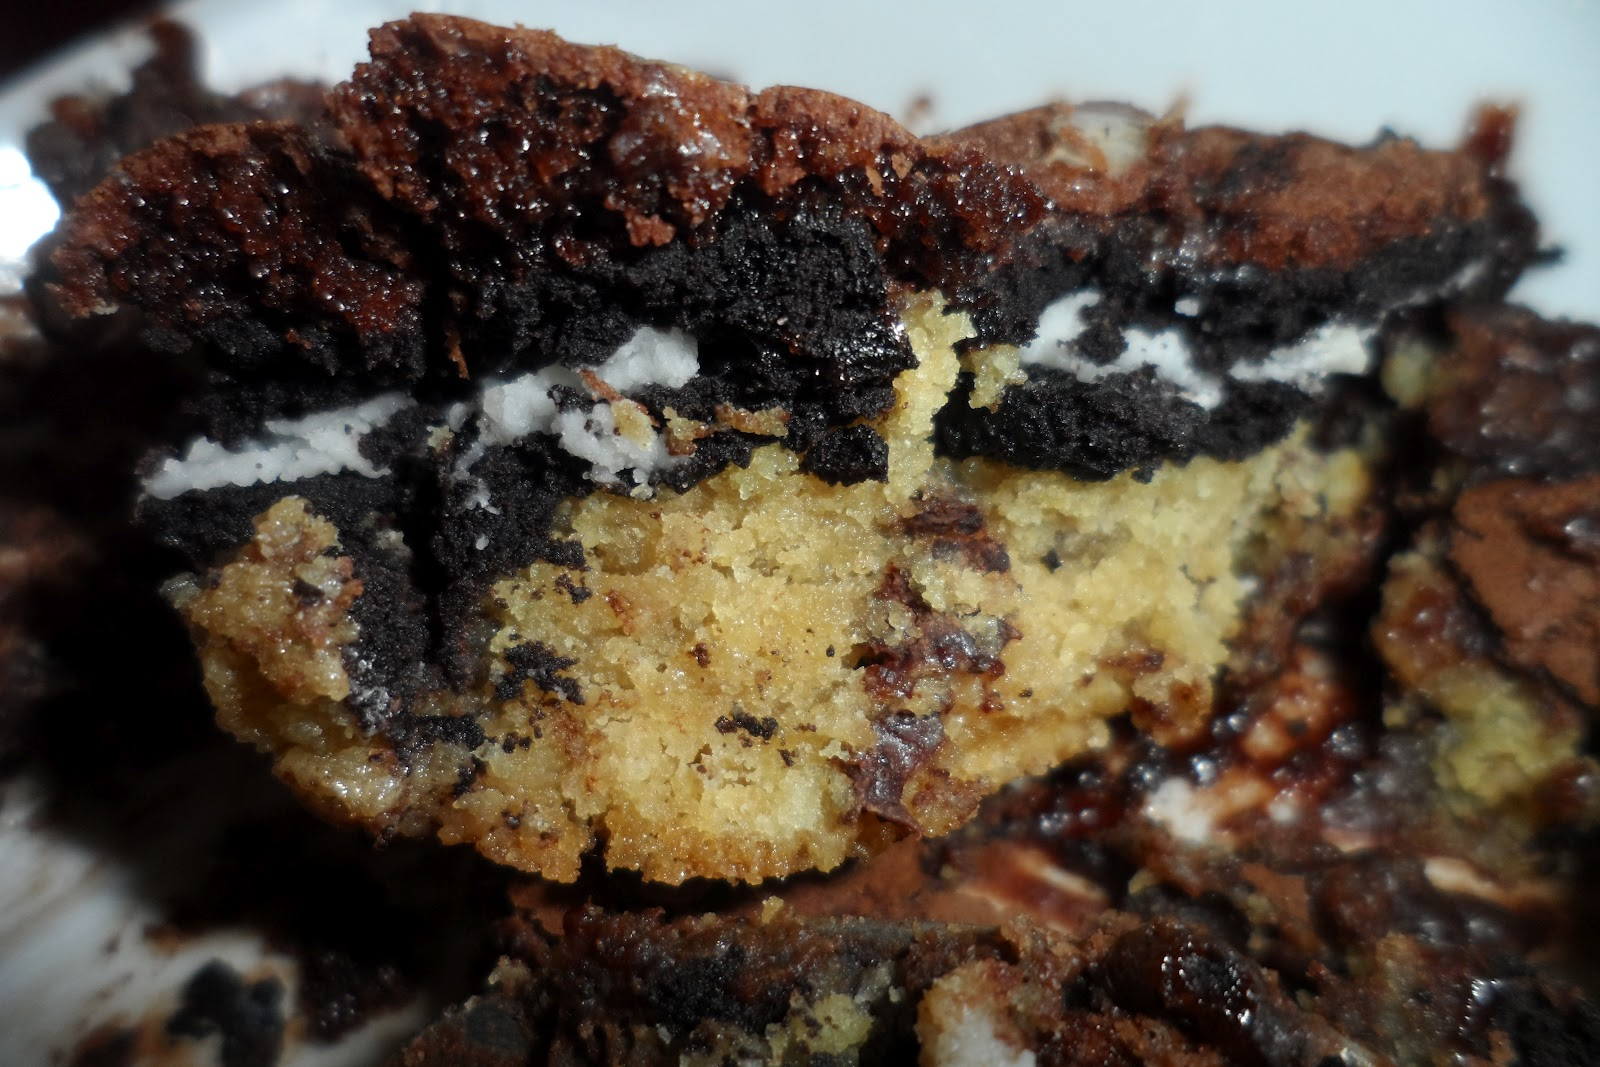 Slutty brownies recipe!